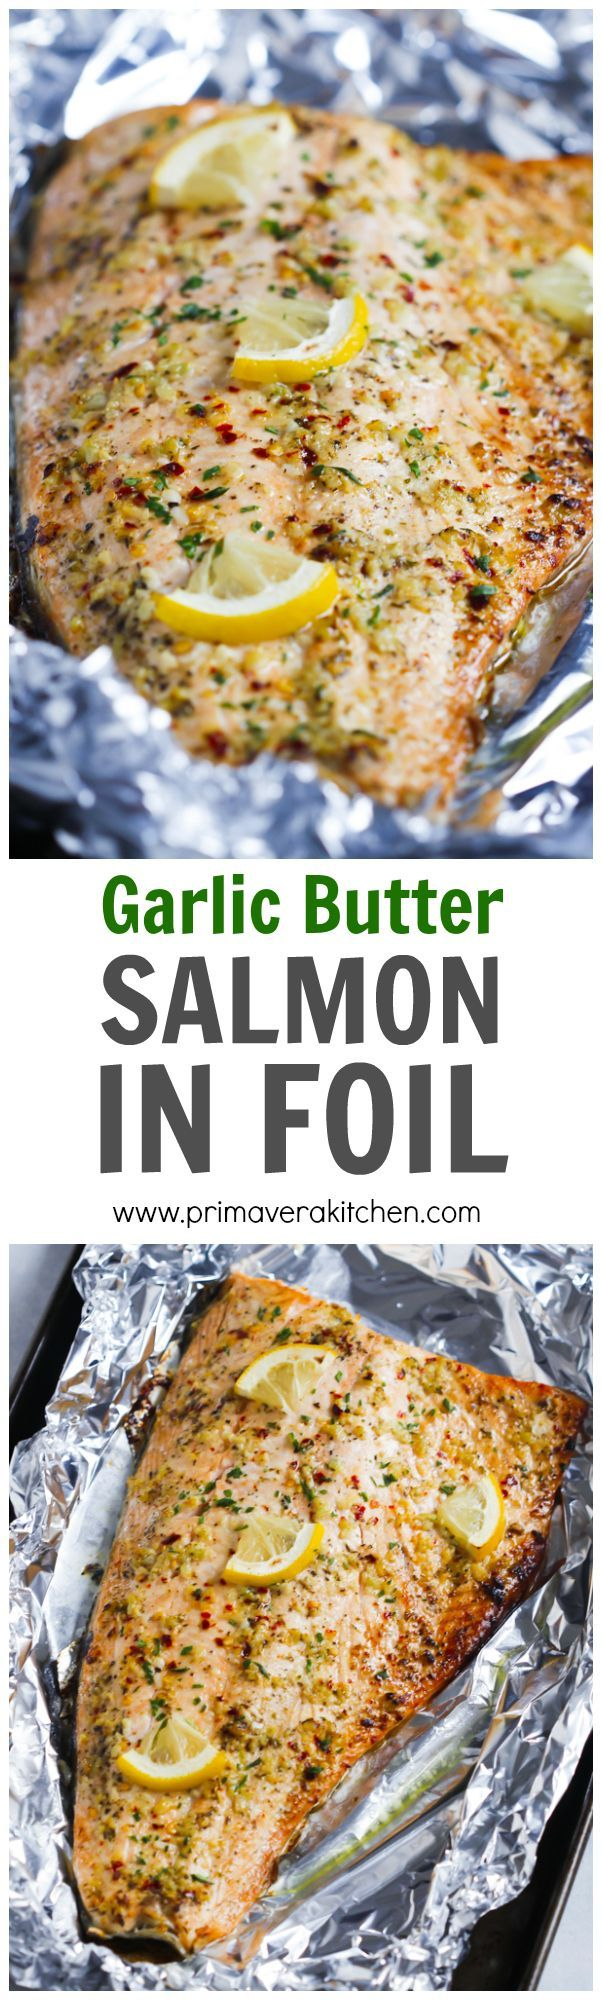 Garlic Butter Salmon in Foil - This Garlic Butter Salmon in Foil is an ultra-easy and a flavourful dinner to make during your busy weeknights. It's ready in less than 30 minutes and it's delicious with salads and roasted veggies. | www.primaverakitc...